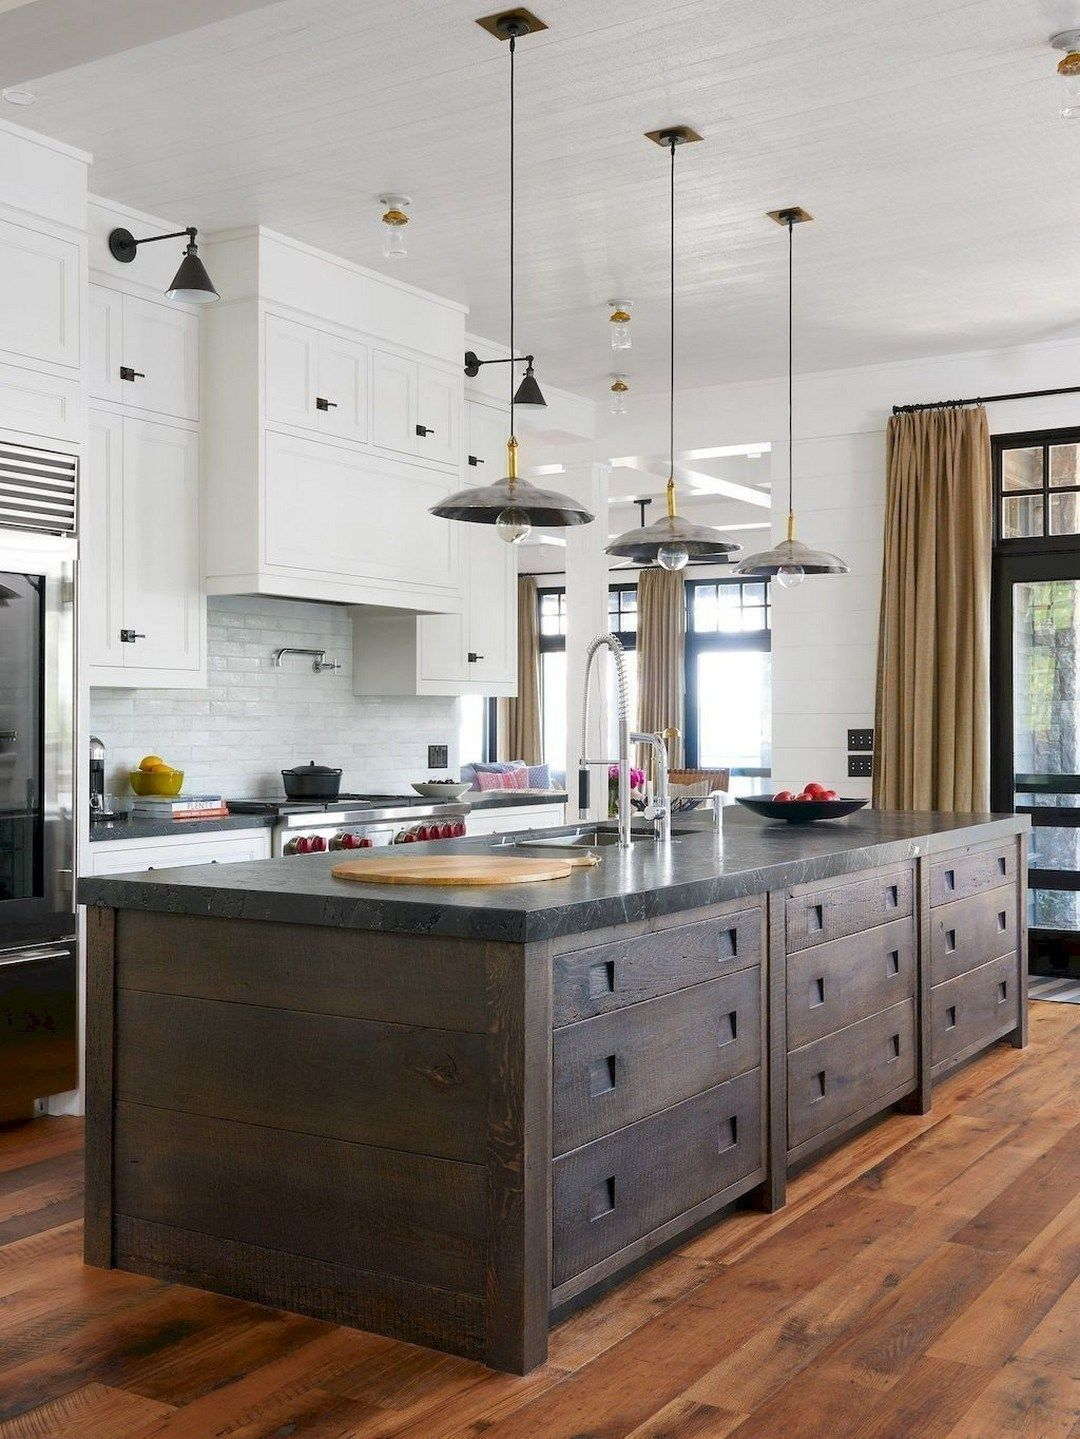 34 Kitchen Island Ideas For Inspiration On Creating Your Own Dream